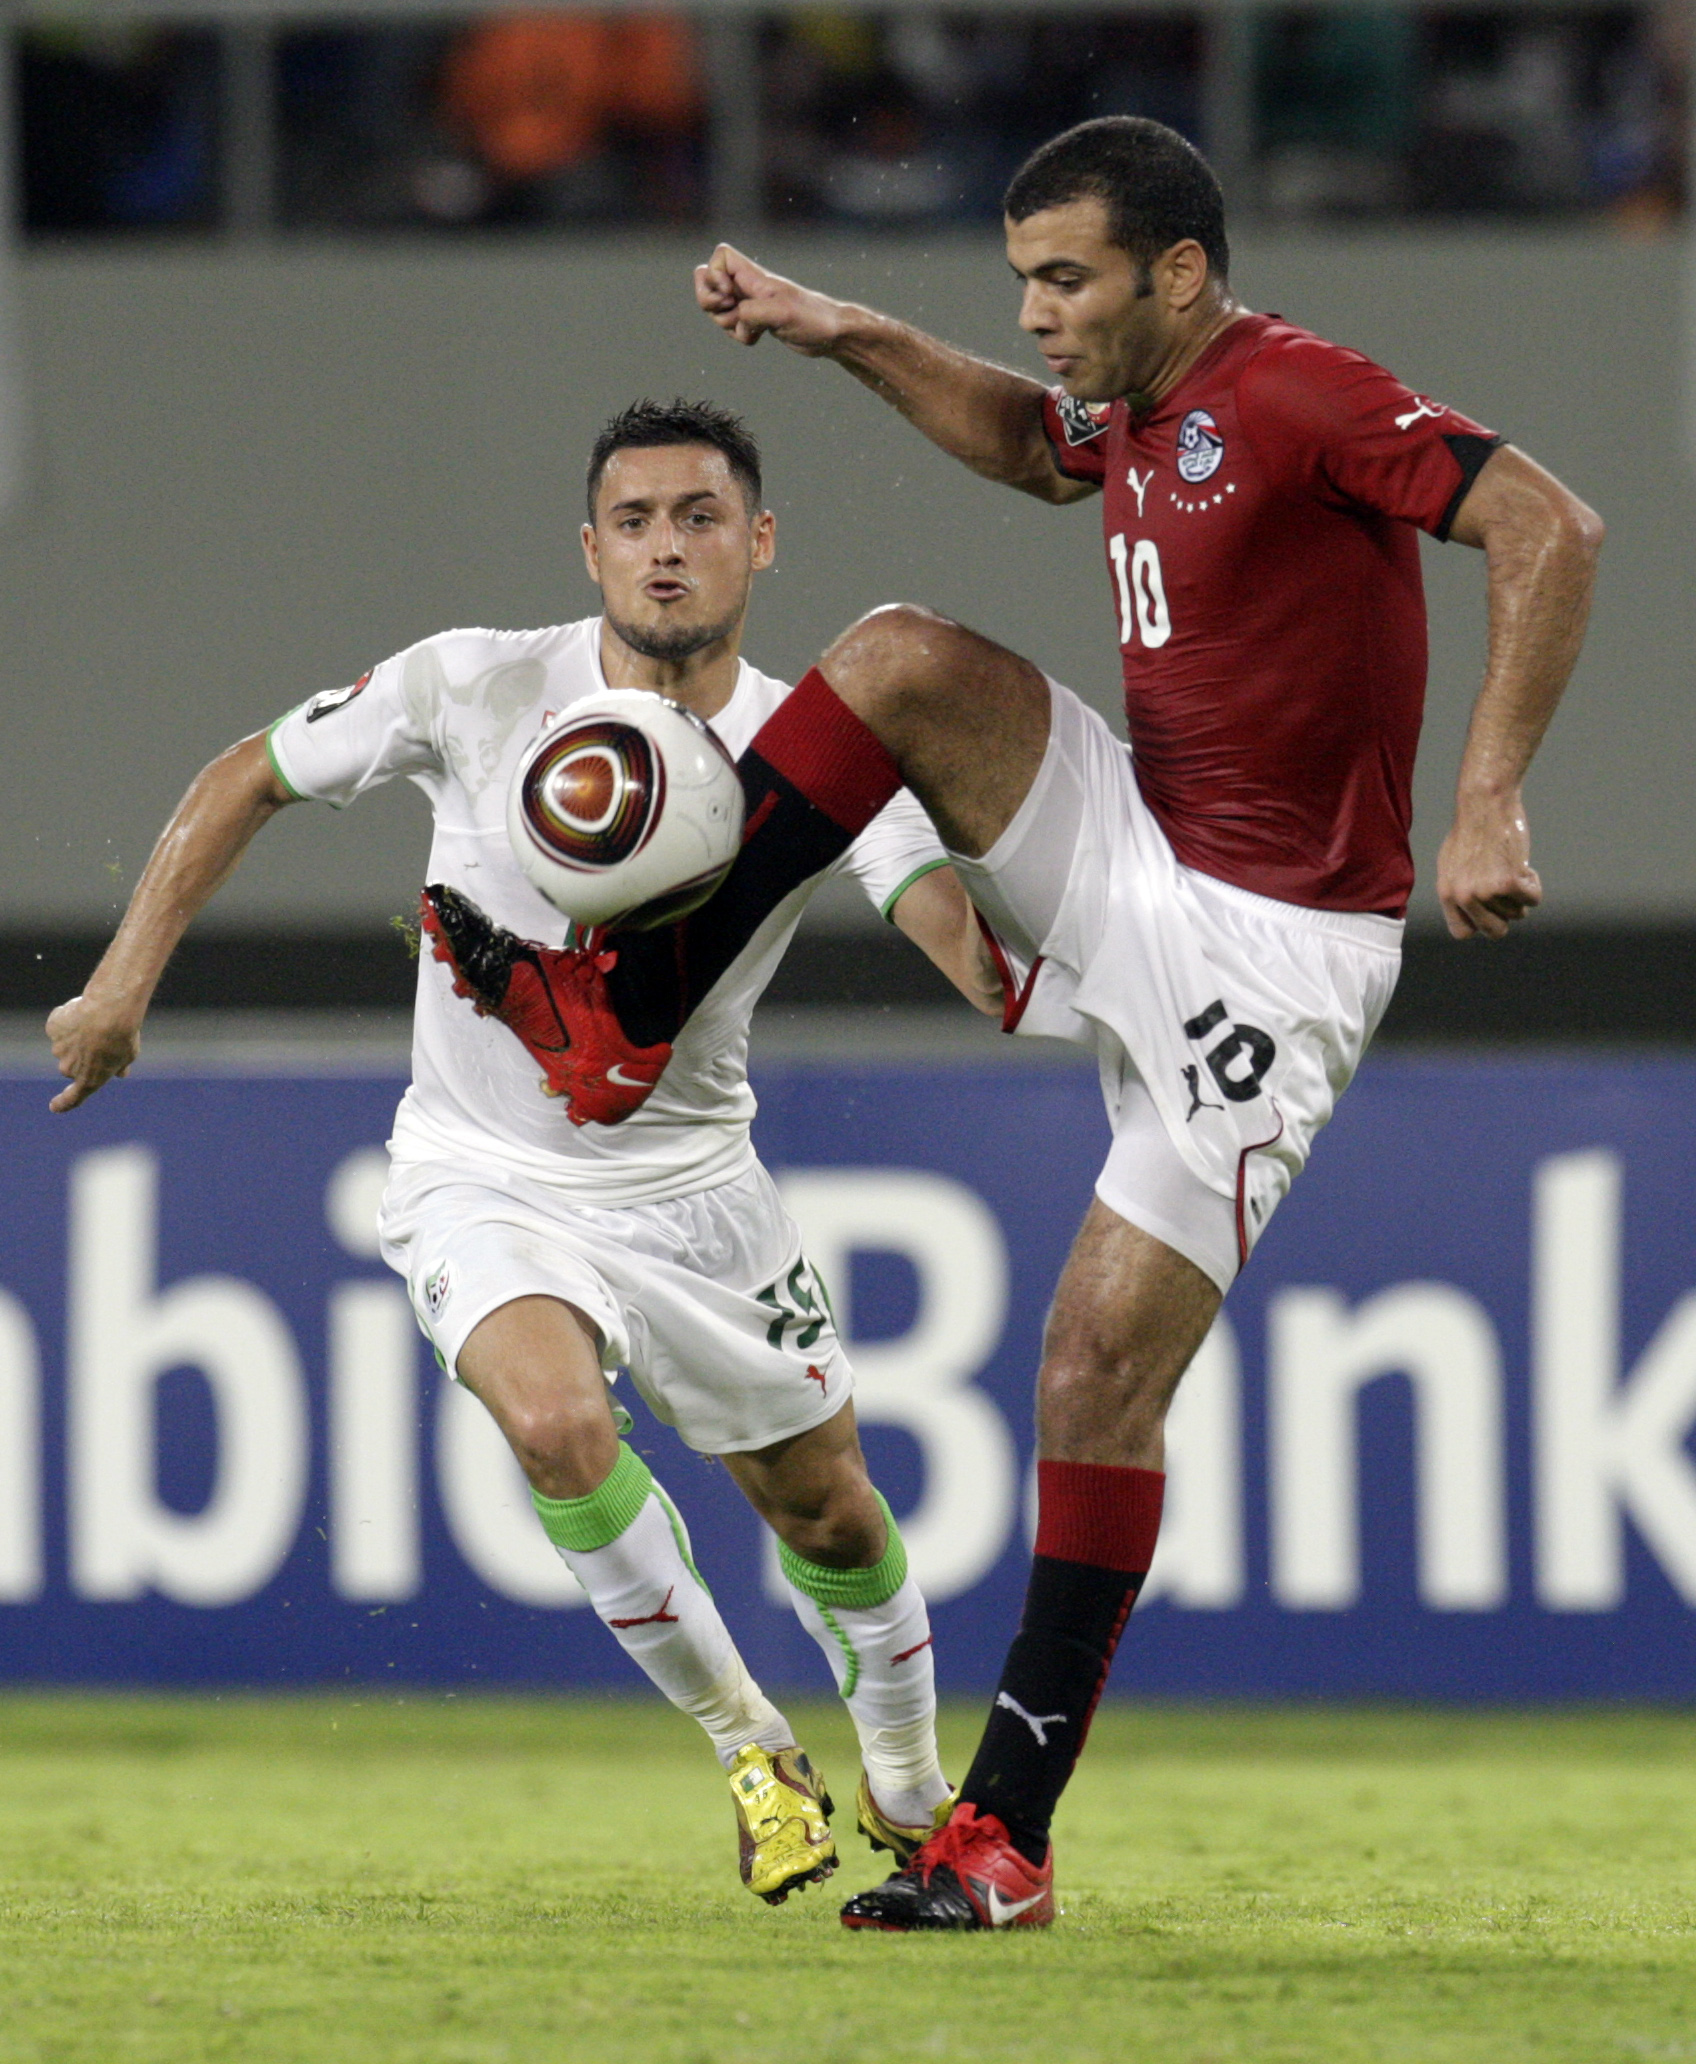 Algeria's Karim Ziani, left, looks on as Egypt's Emad Meteab, traps the ball during the semi-finals of their African Cup of Nations soccer match at th...